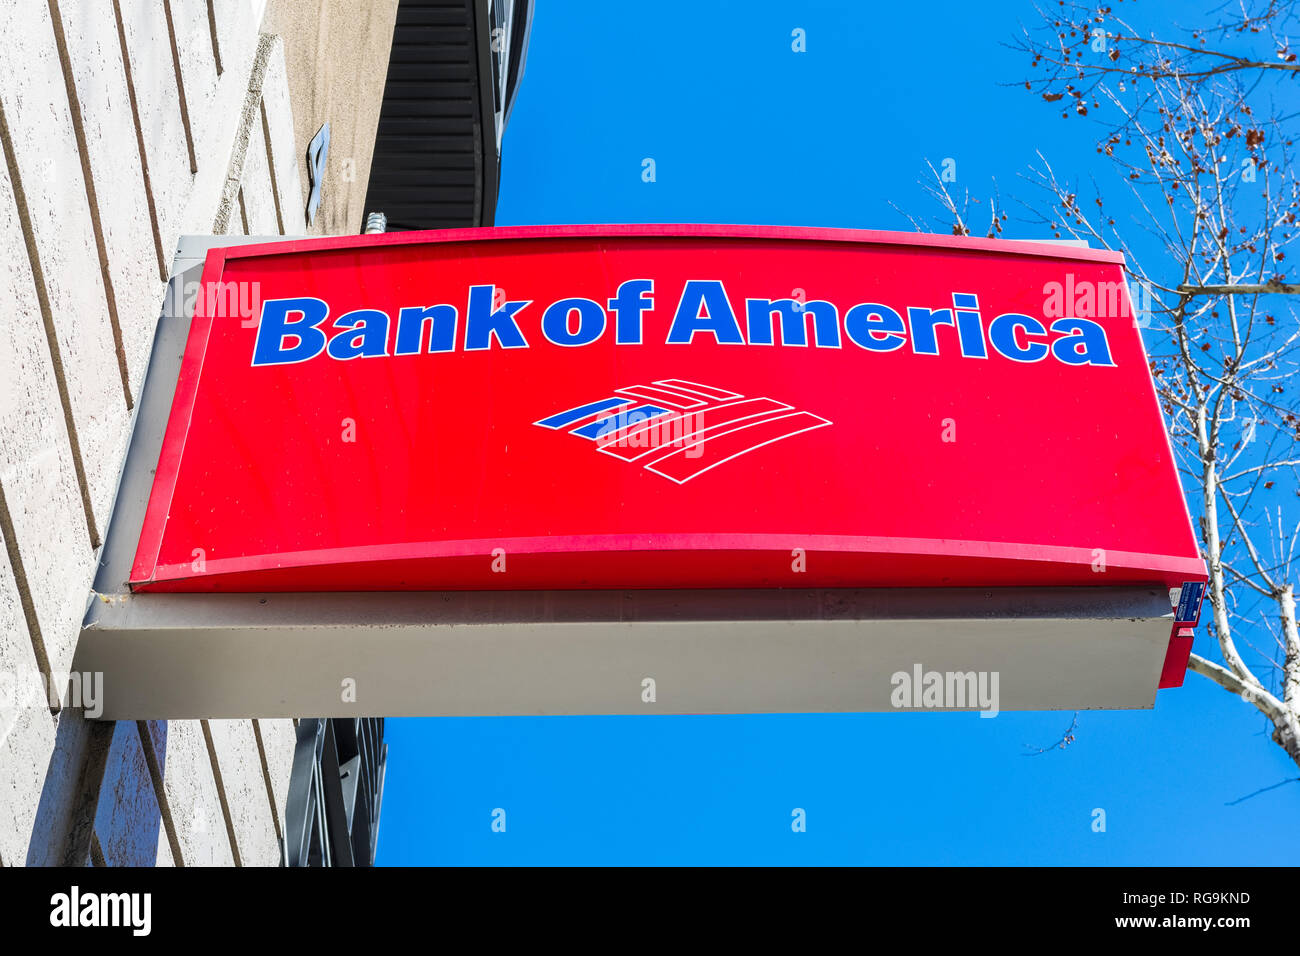 February 21, 2018 San Jose / CA / USA - Bank of America logo above the entrance to one of the bank's branches, San Francisco bay area - Stock Image